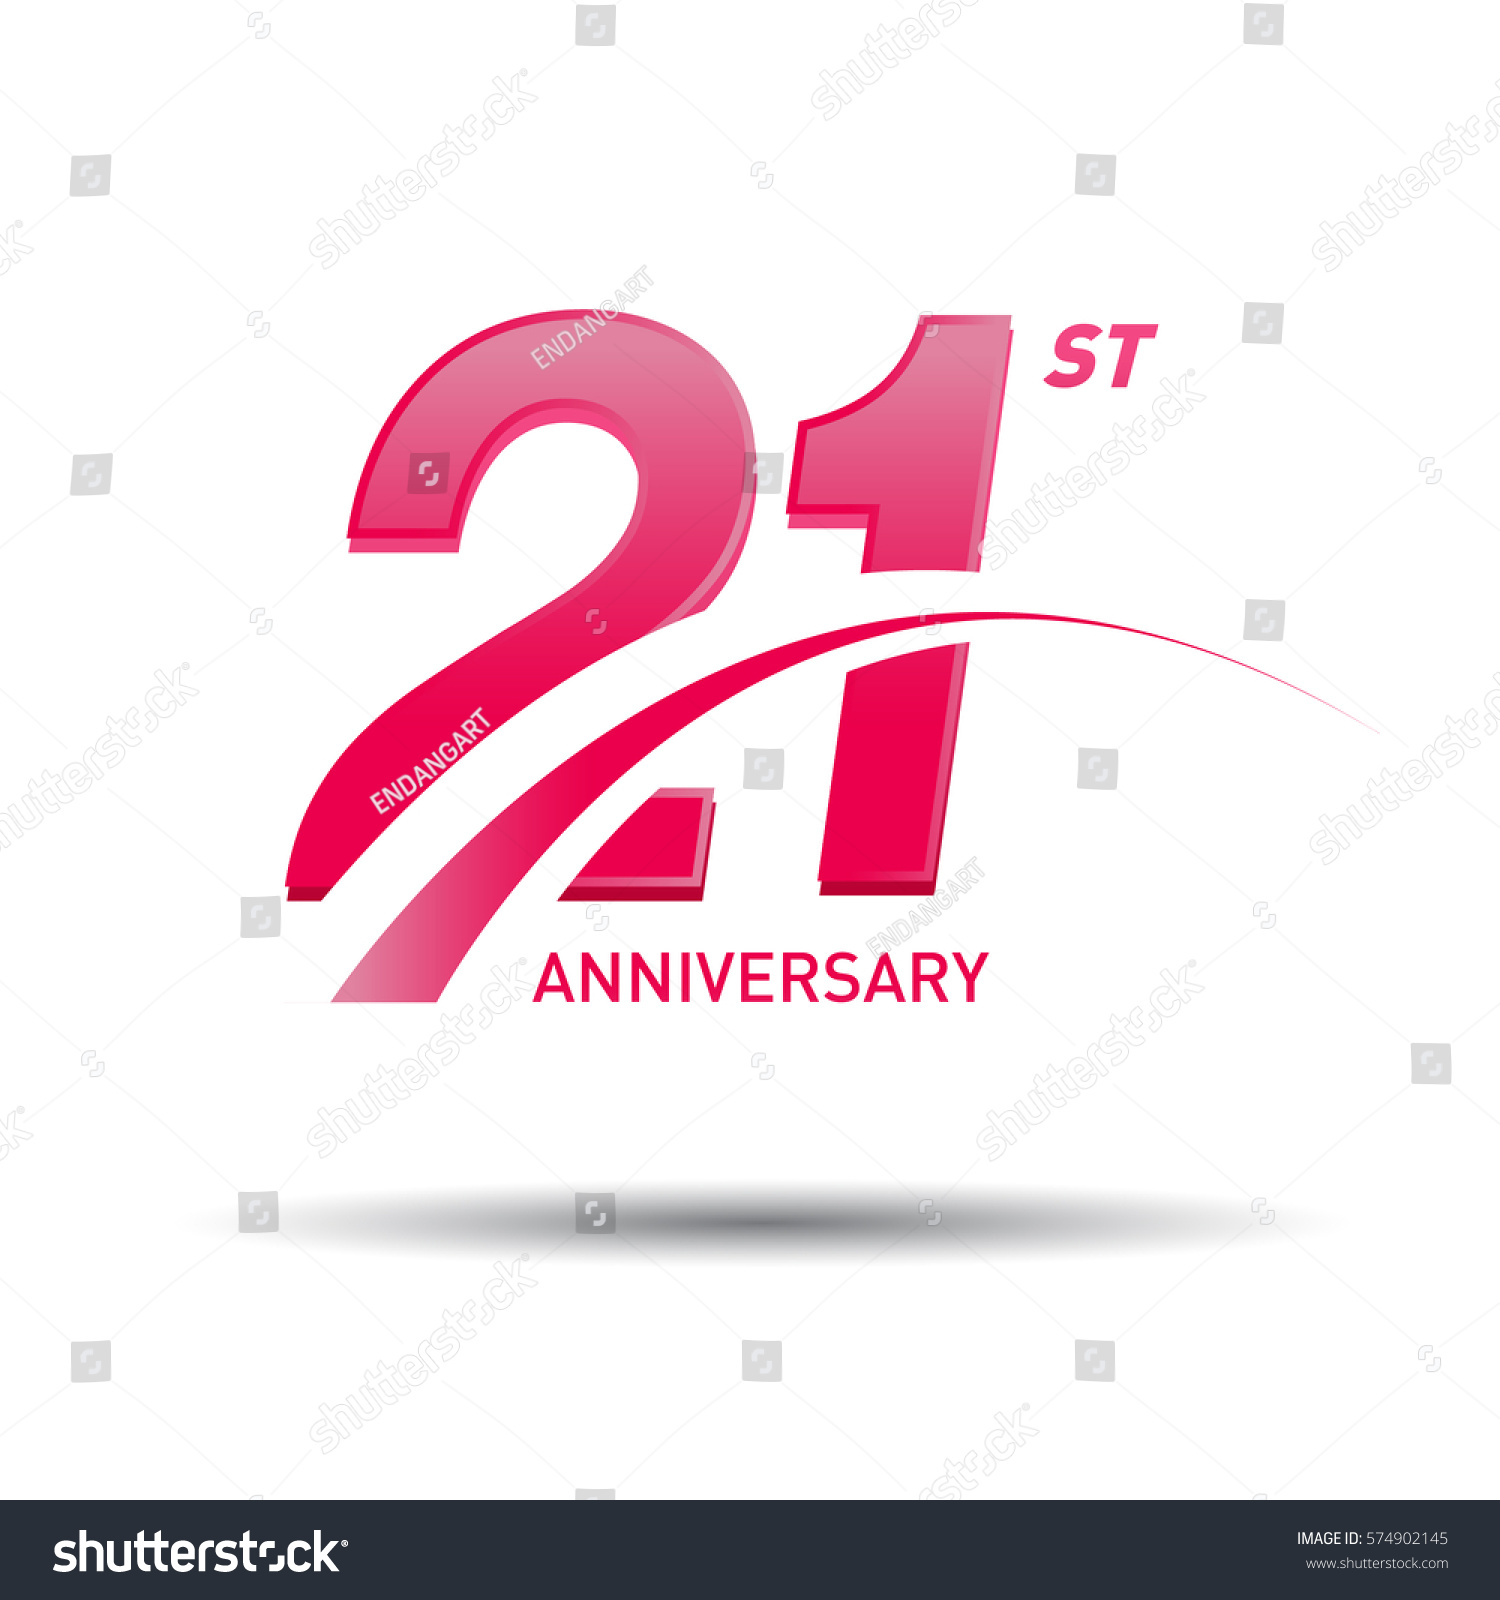 21 Years Pink Anniversary Business Coorporate Stock Vector Royalty